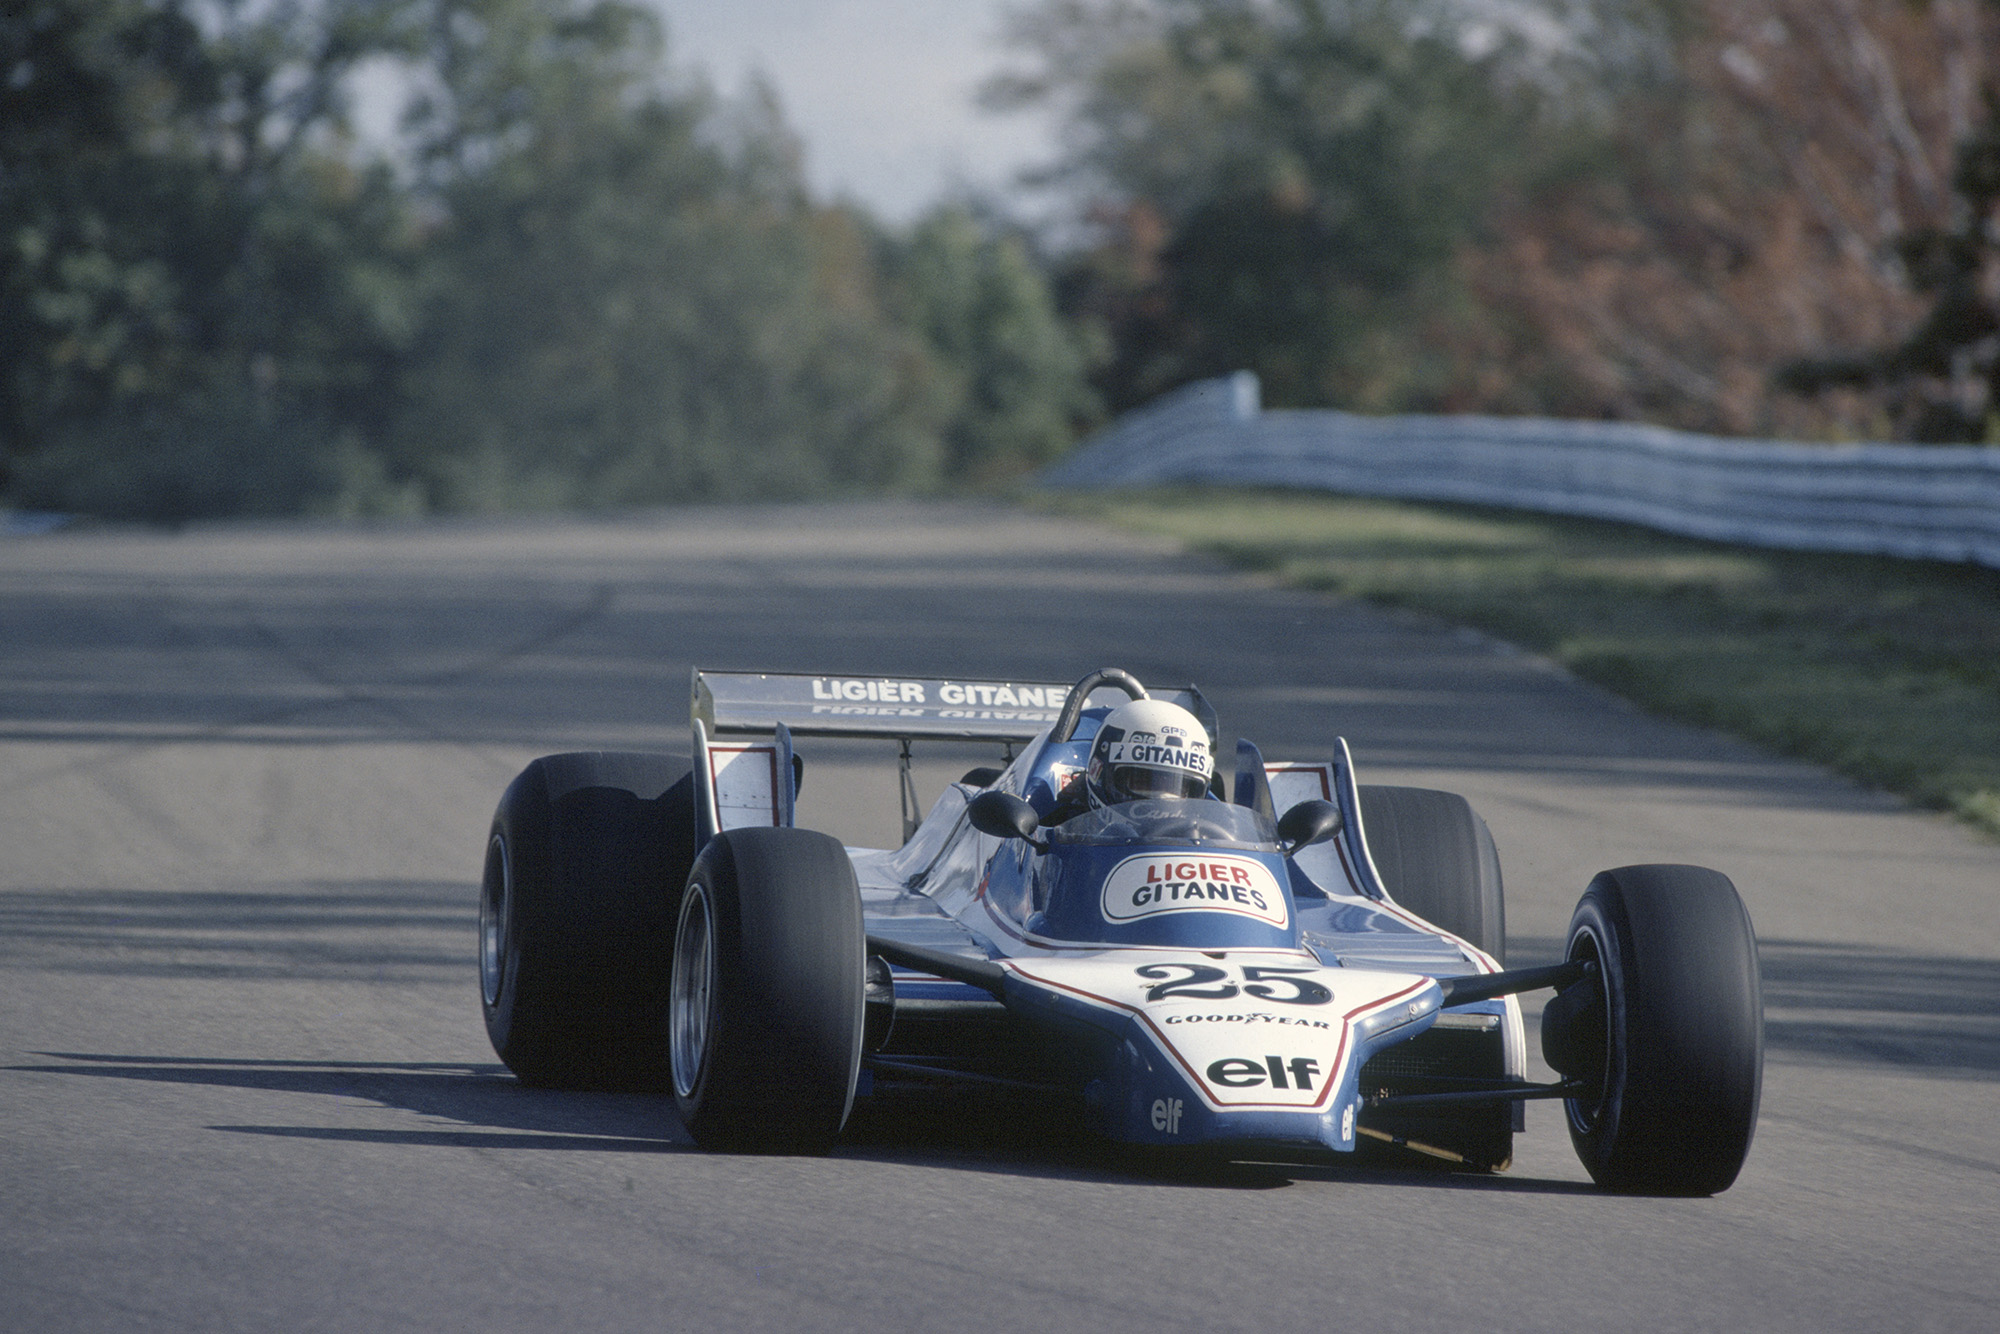 Didier Pironi in his Ligier Ford Cosworth in the 1980 US GP